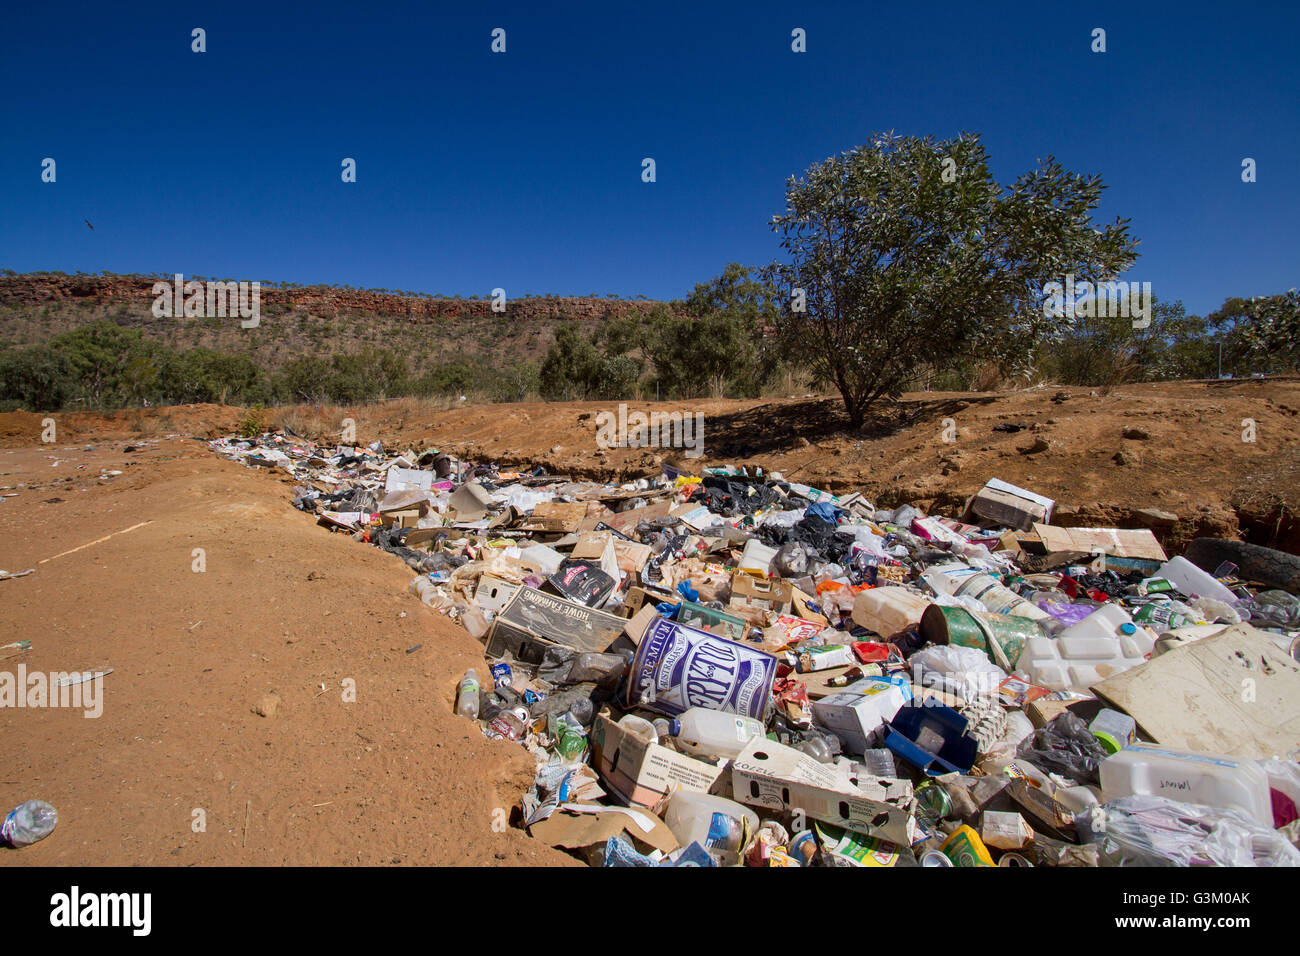 Landfill in the Australian outback - Stock Image